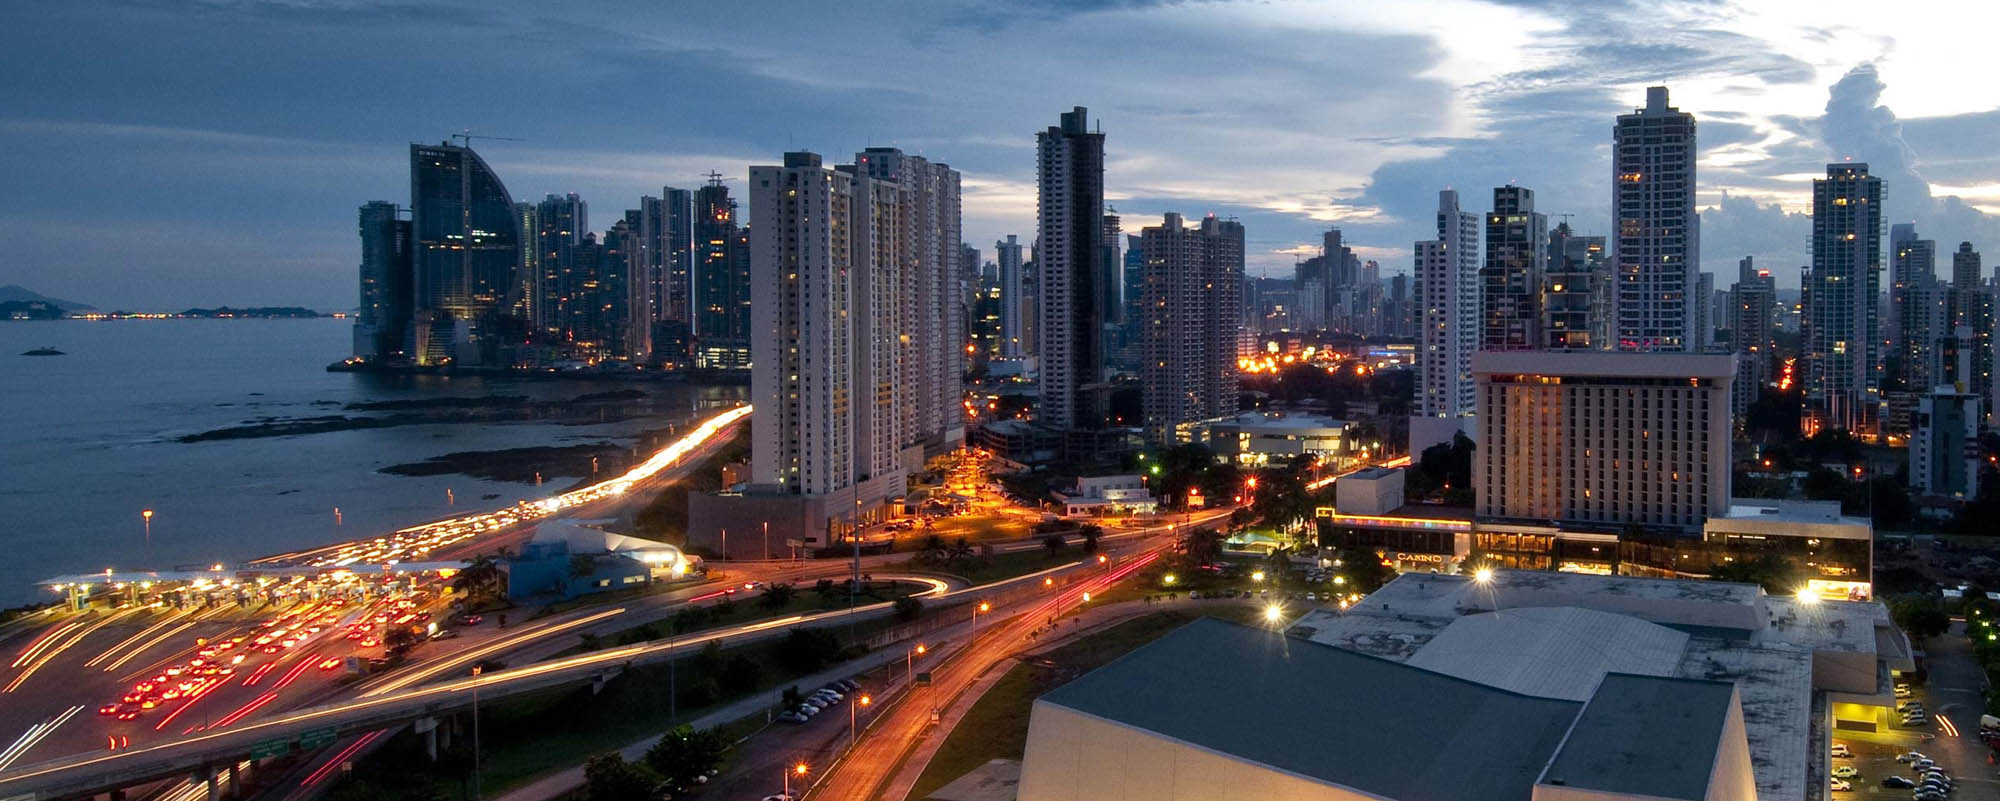 Hotels In Panama City, Panama City Hotels, Hotels In